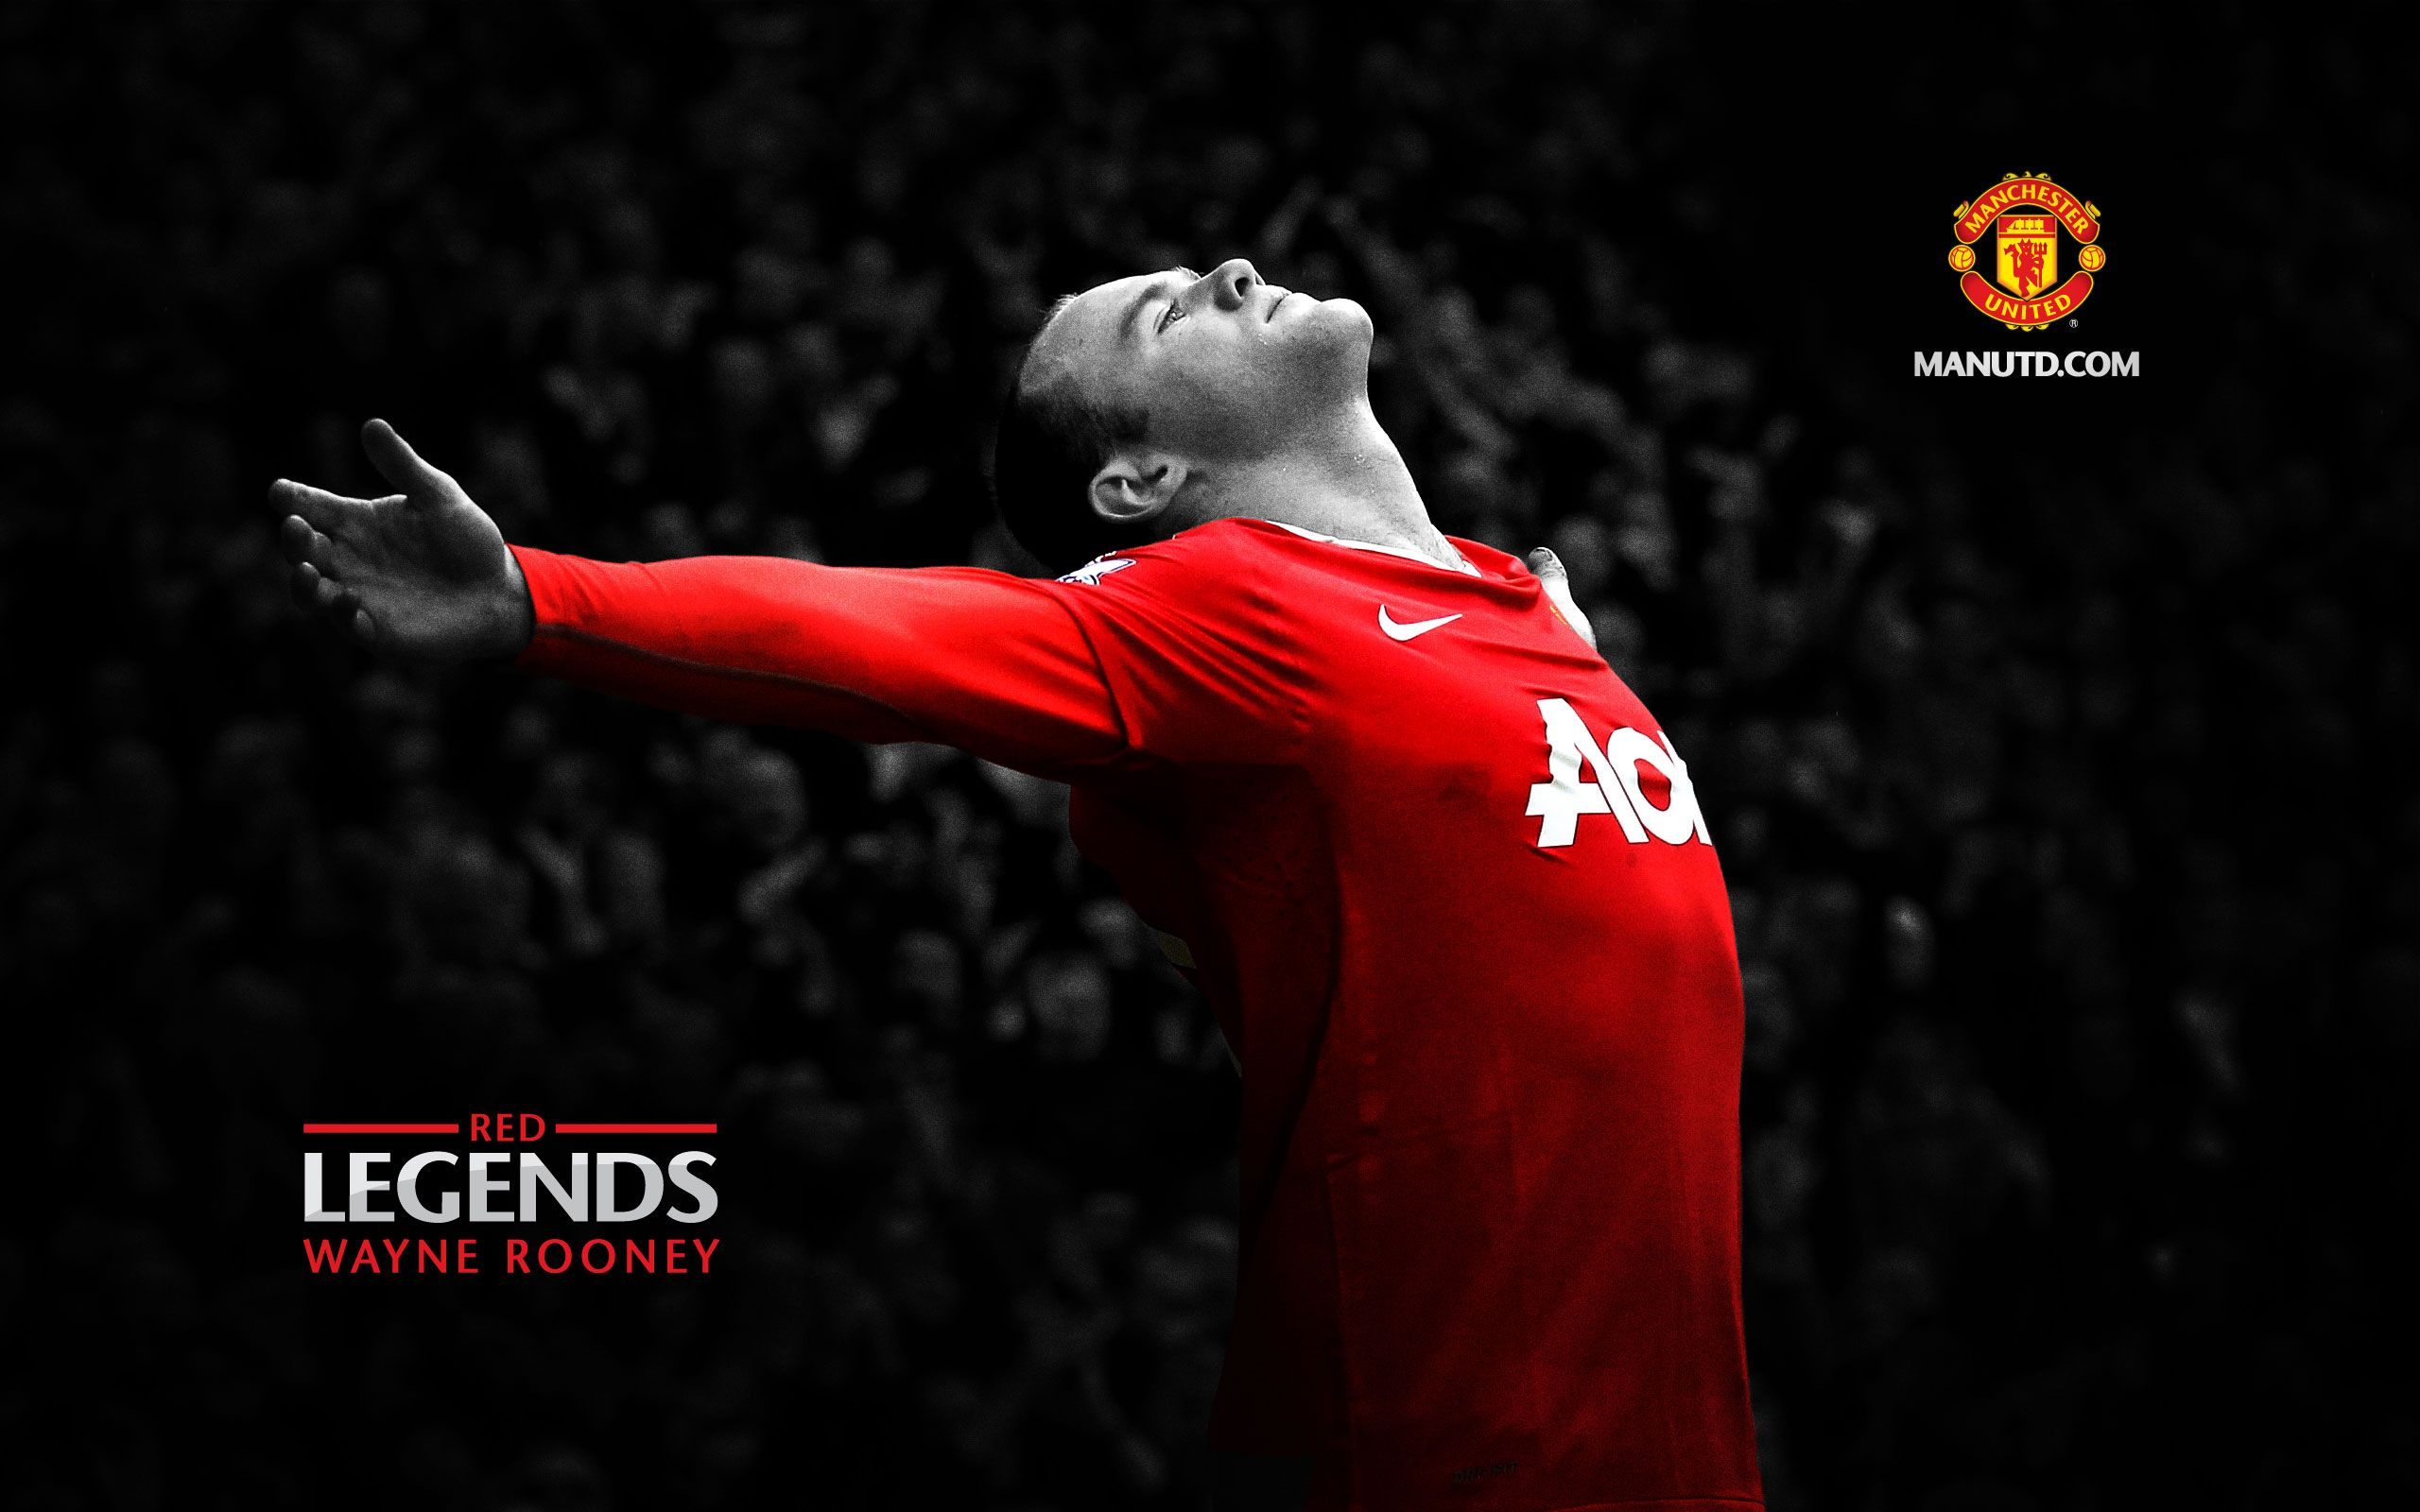 Exclusive Wallpaper Manchester United Wallpaper Manchester